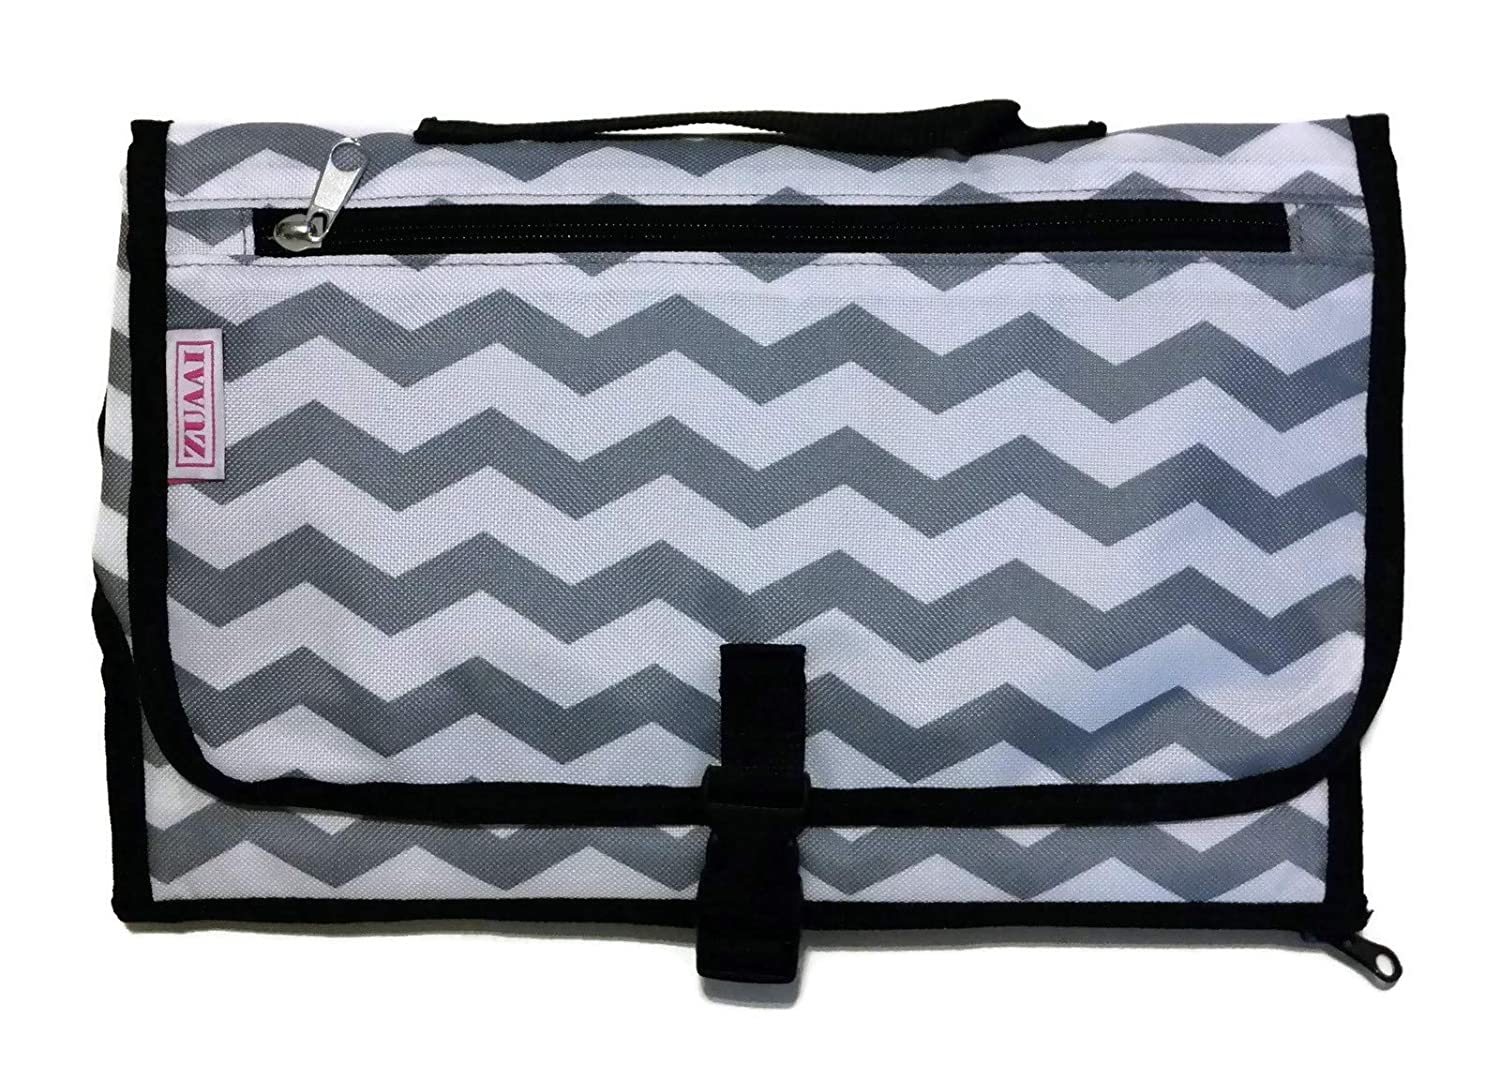 Baby Changing Mat, diapers, baby wipes, infant formula stored and travel sized diaper bag portable pouch